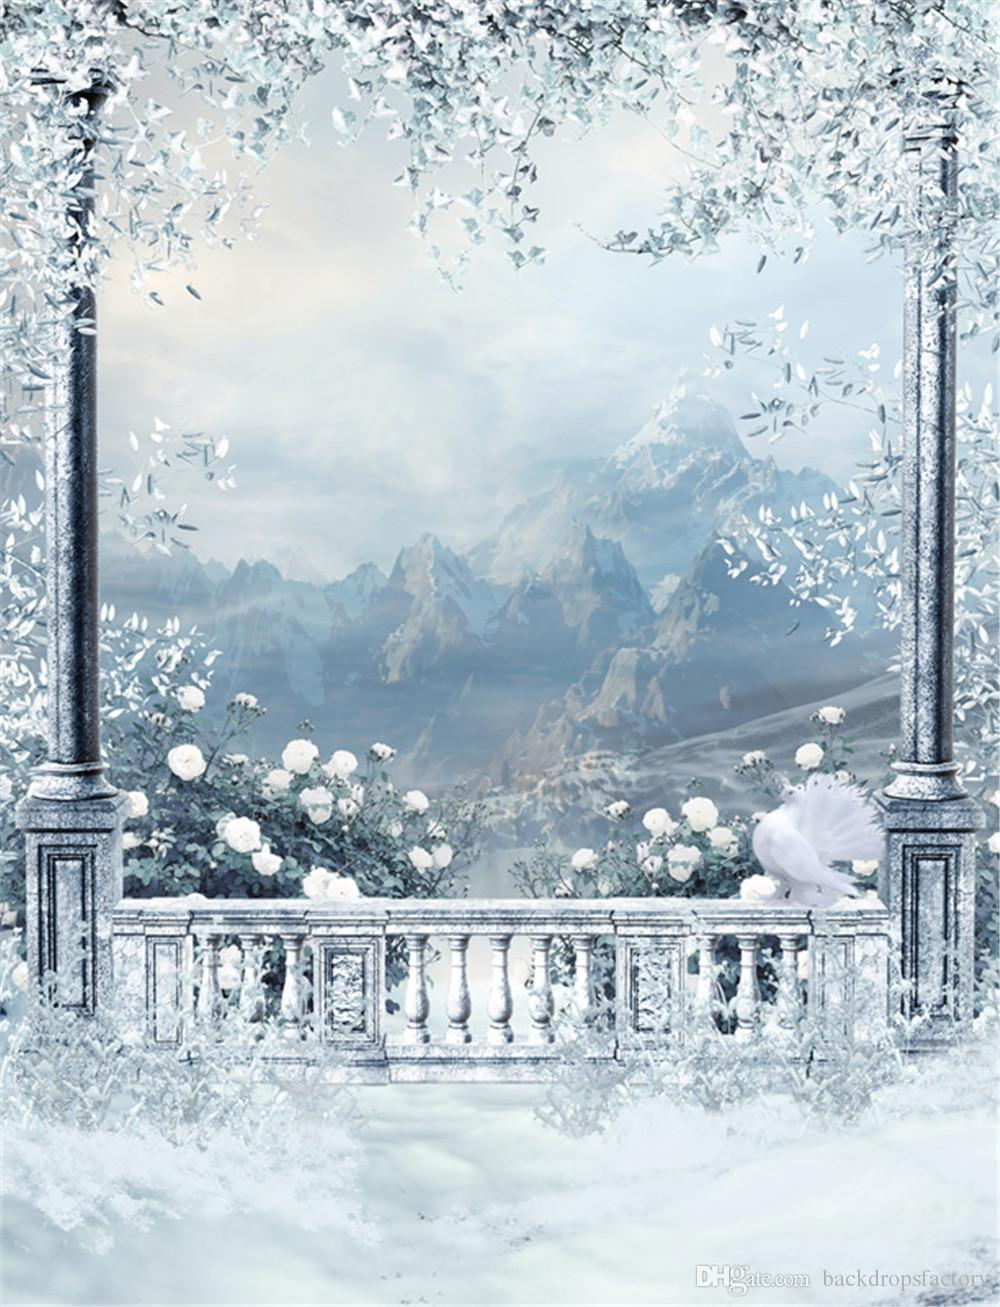 Winter Snow Scenic Wallpaper Outdoor Background White Pigeon Trees 1000x1307